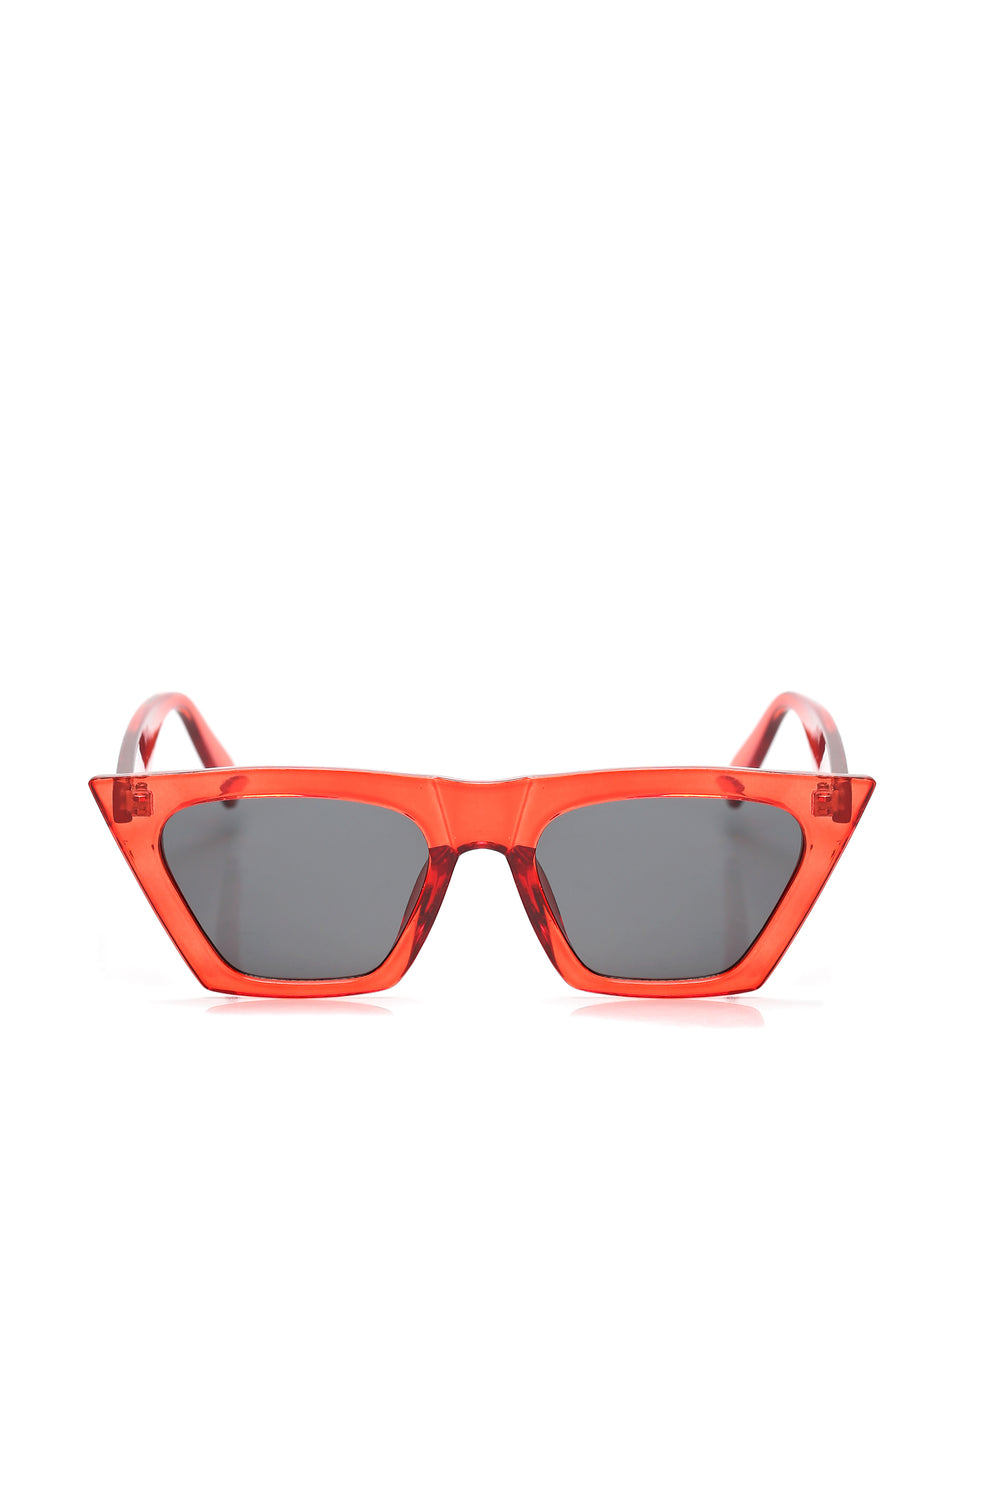 Riding On Edge Sunglasses - Red/Combo